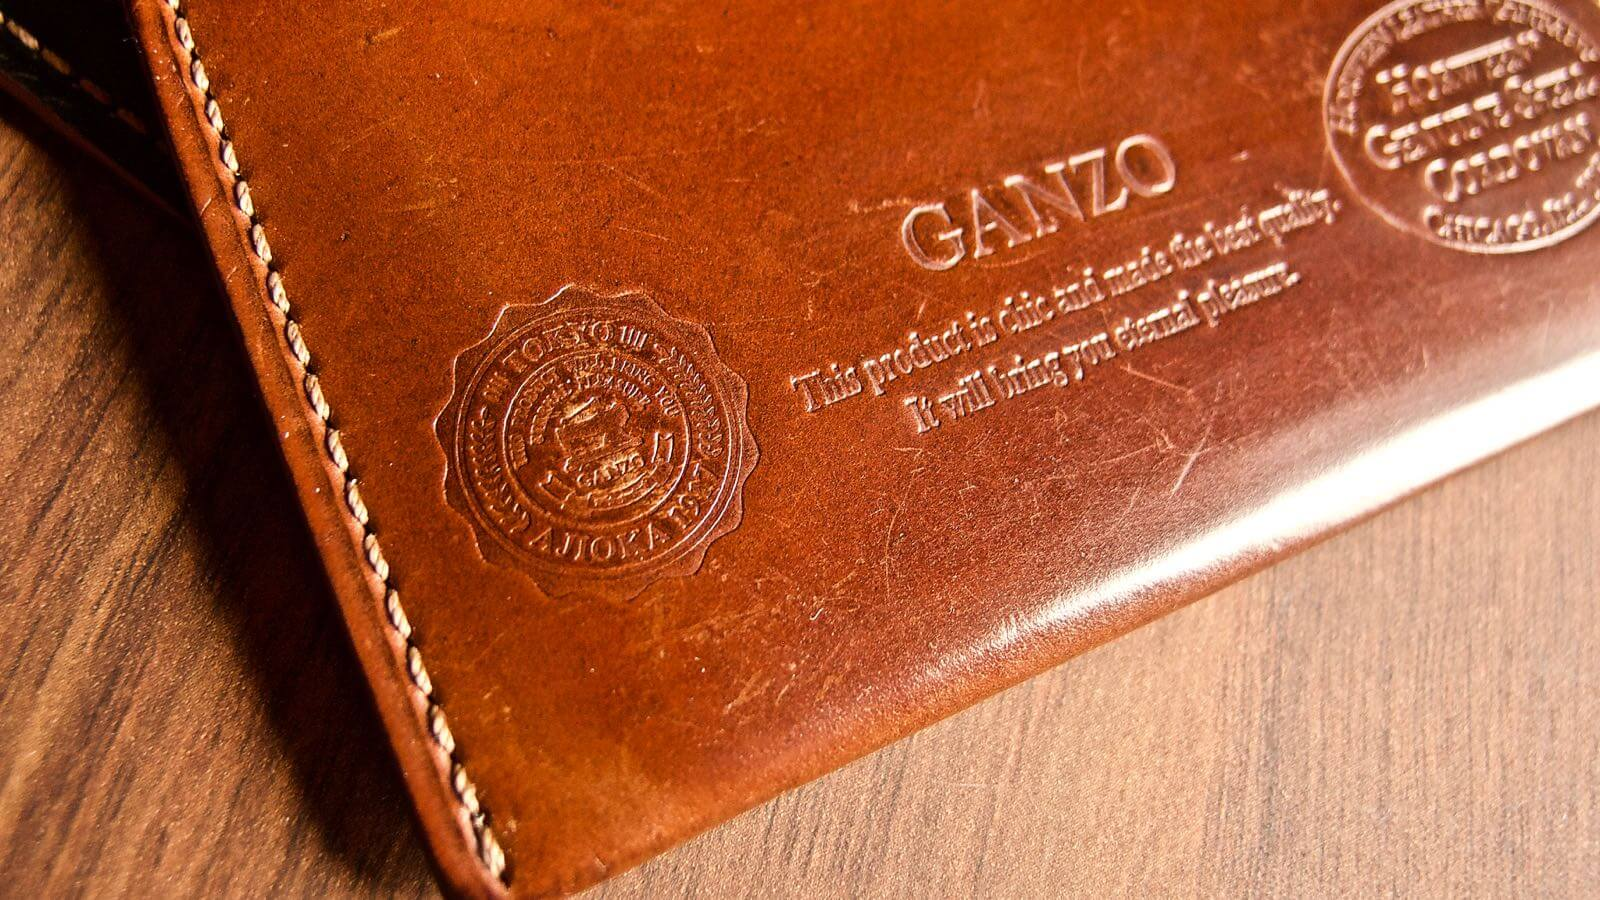 0037 Ganzo Shell Code Bank Business Card Holder 5 Years Aging 11